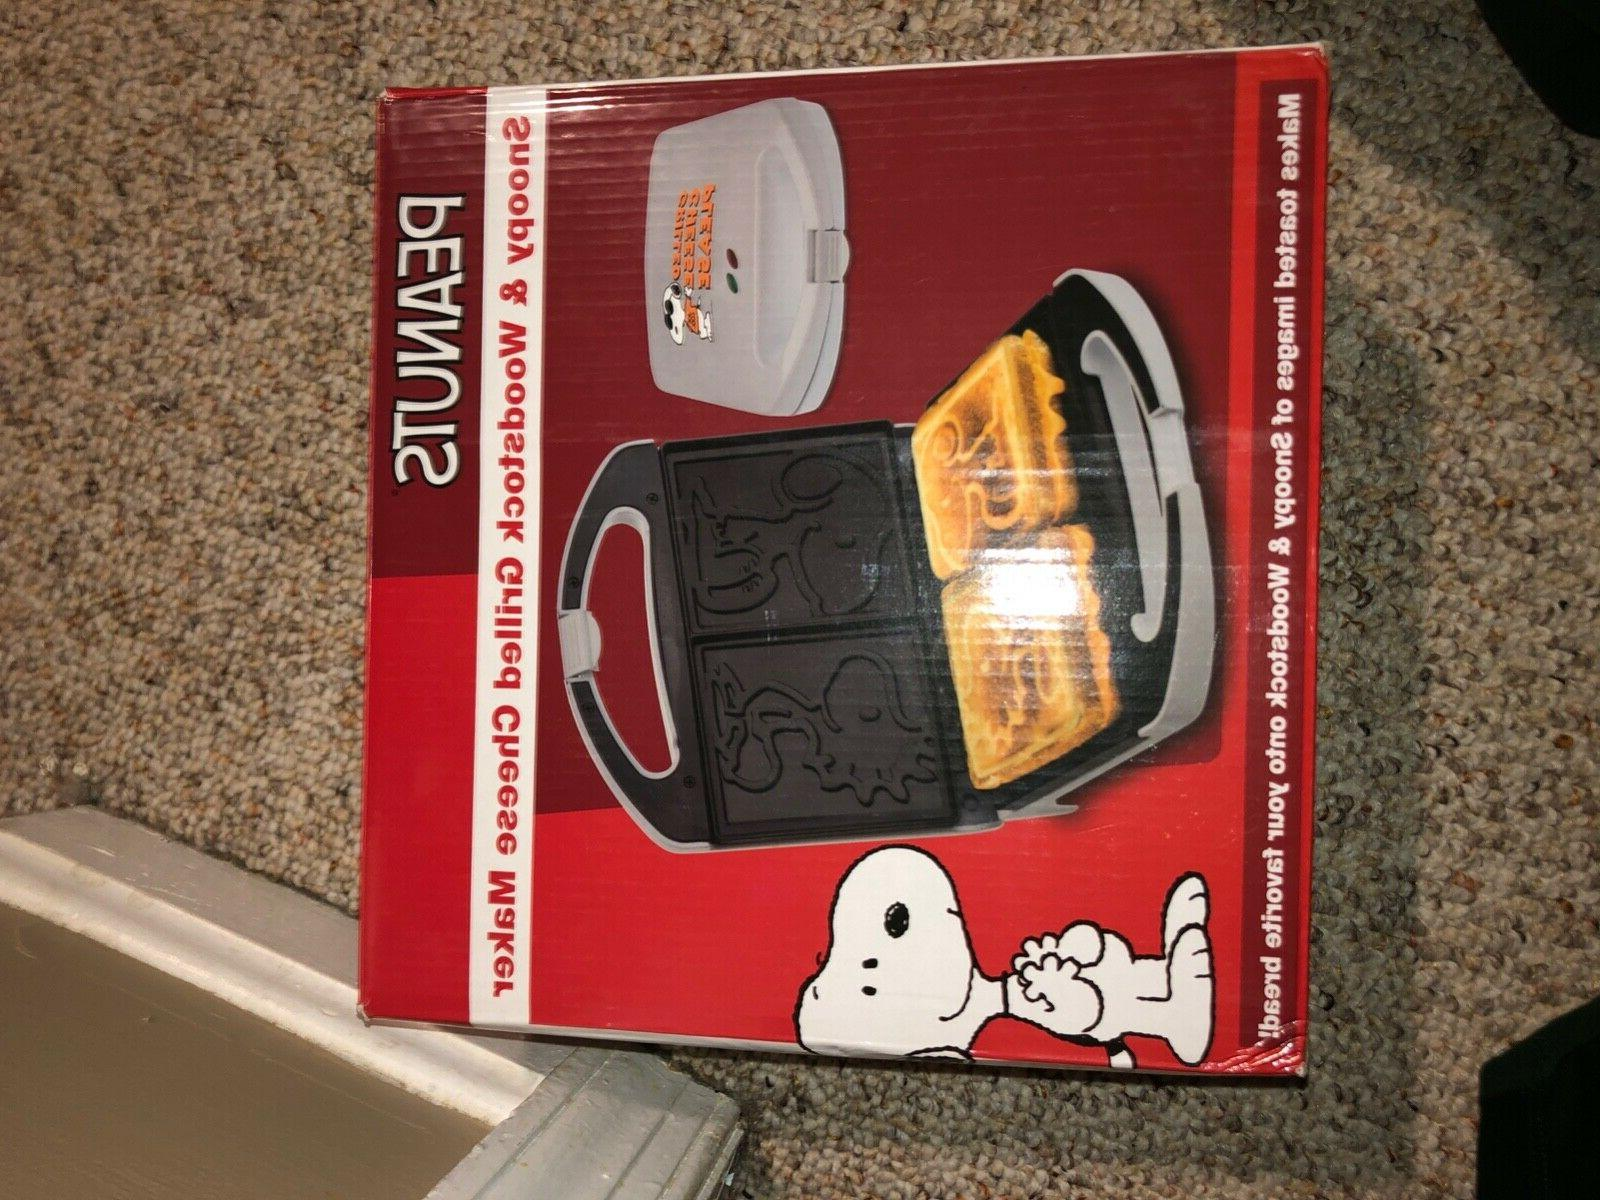 Smart SGCM‐2 Peanuts Snoopy Woodstock Grilled Cheese Sandwich